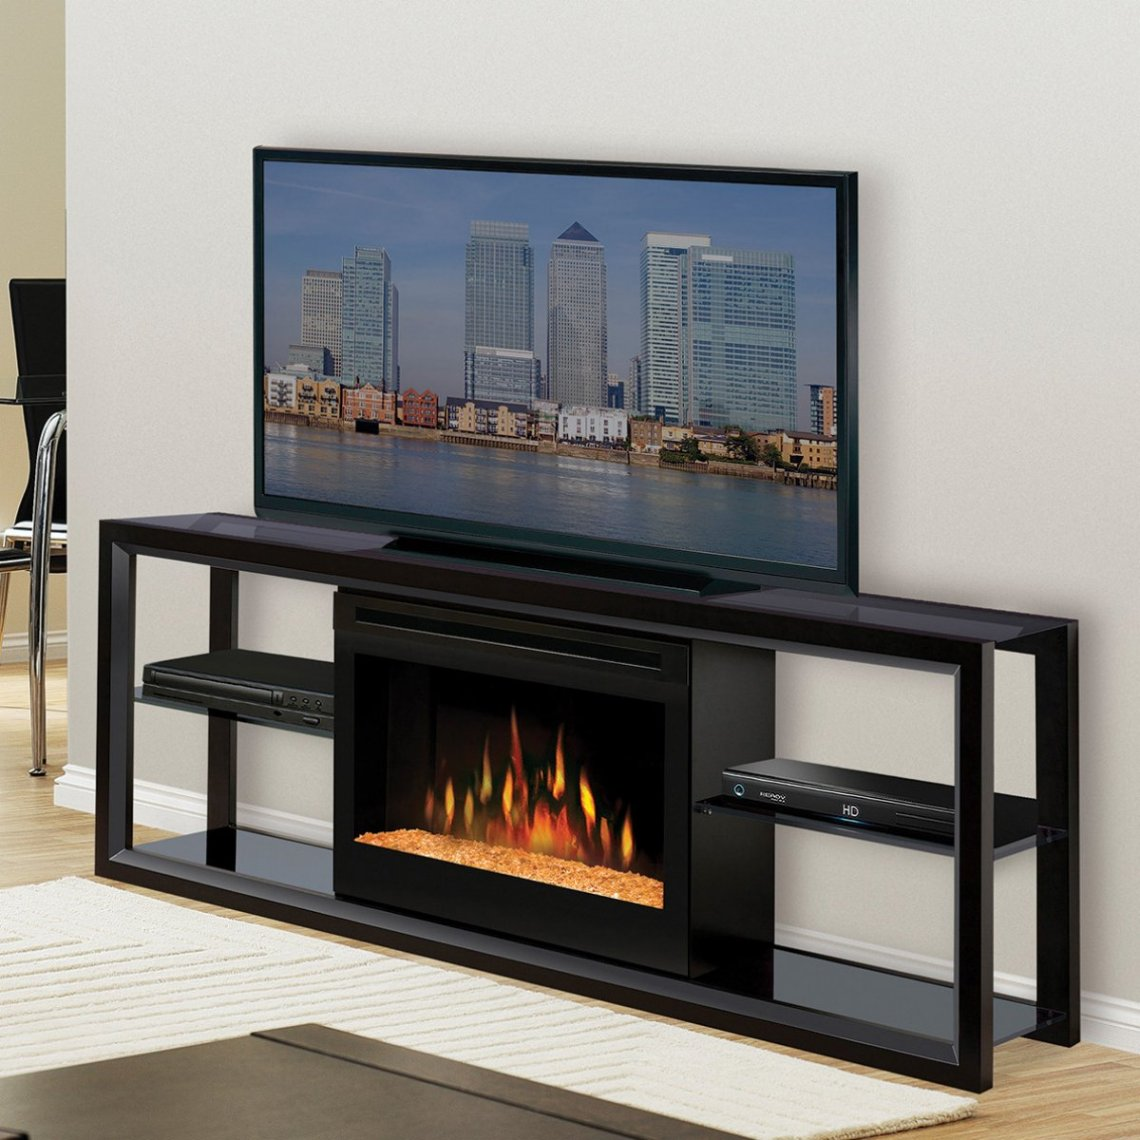 Image Result For Can I Mount A Tv On A Brick Fireplace